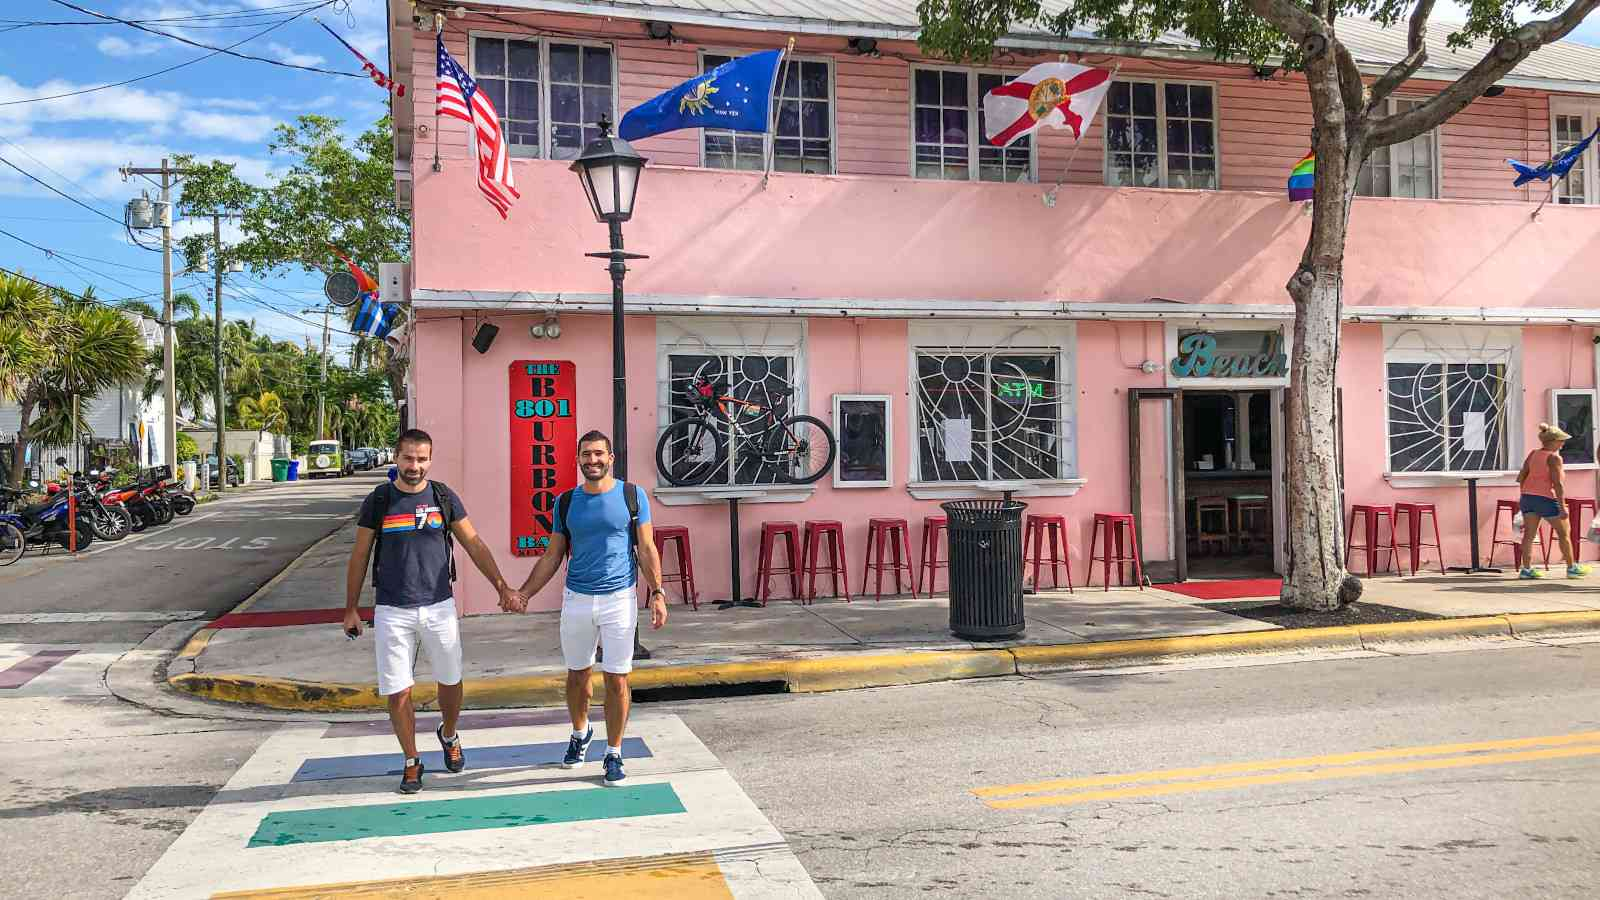 The rainbow crossing on Duval Street in Key West is the heart of the island's awesome gay scene